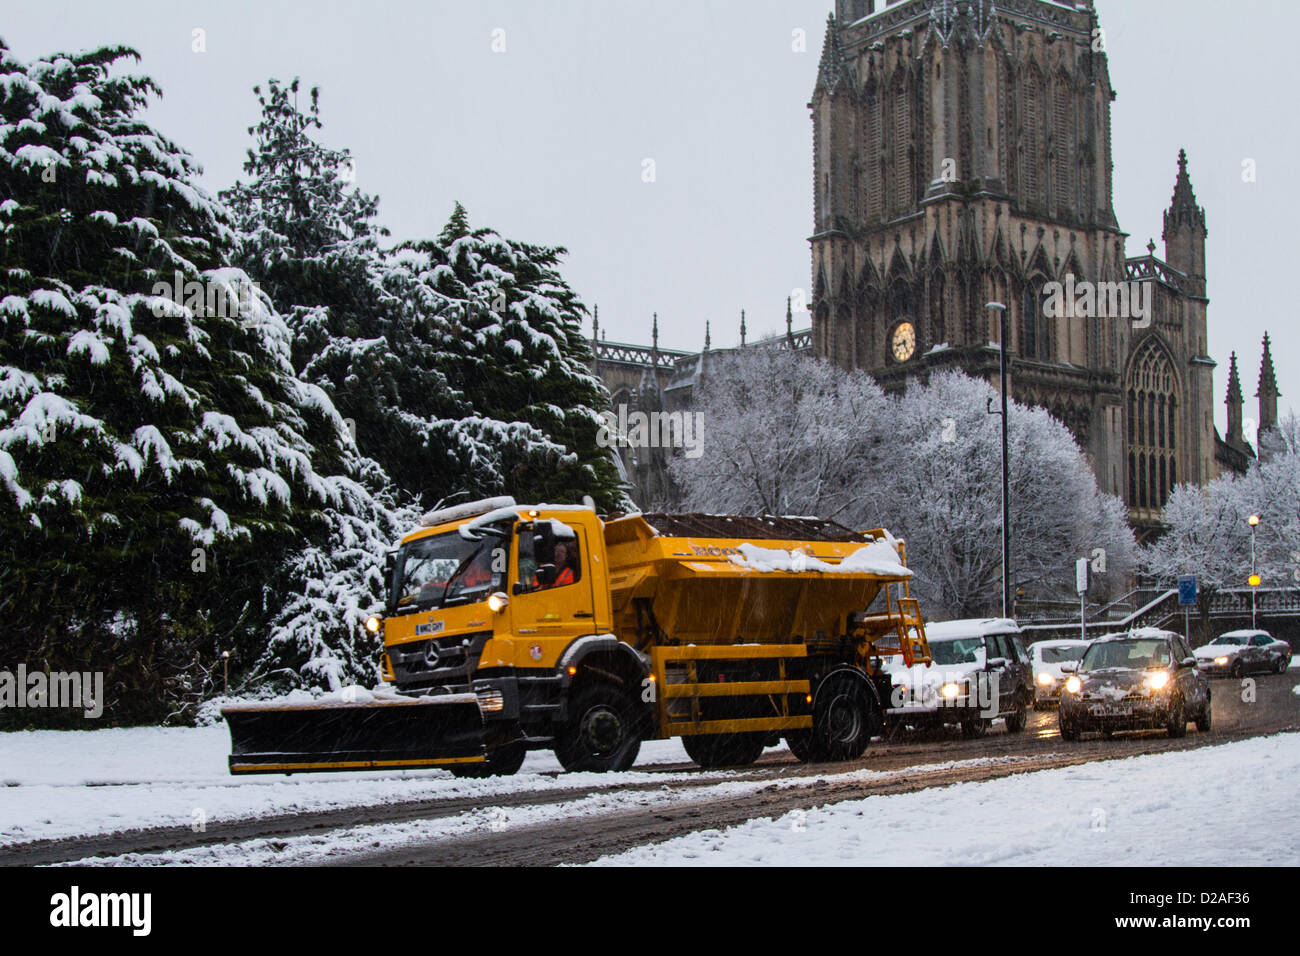 Gritter Lorry Uk Stock Photos Amp Gritter Lorry Uk Stock